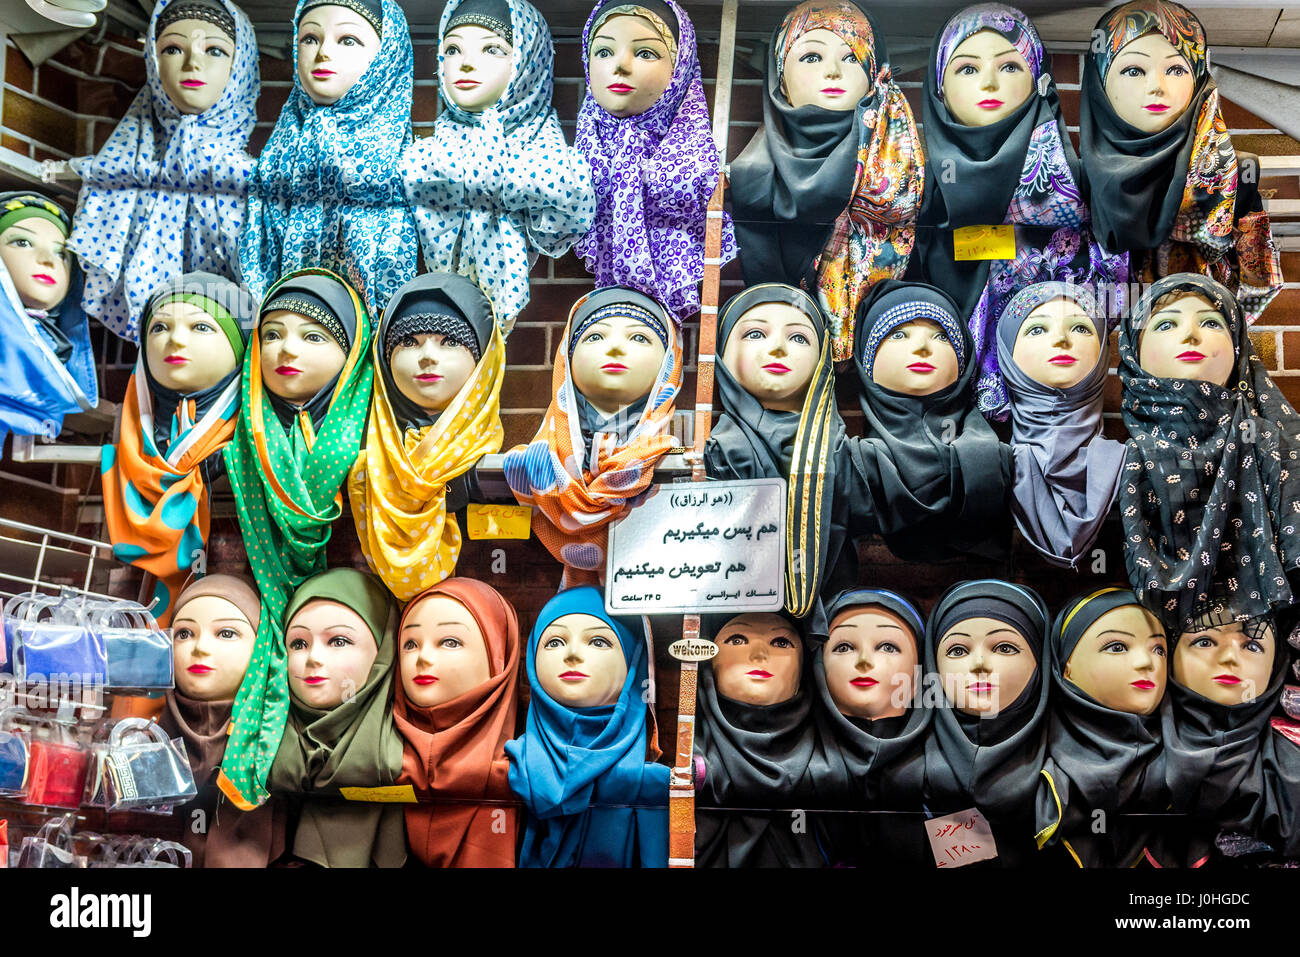 Hijabs for sale in clothes shop in Shiraz city, capital of Fars Province in Iran - Stock Image